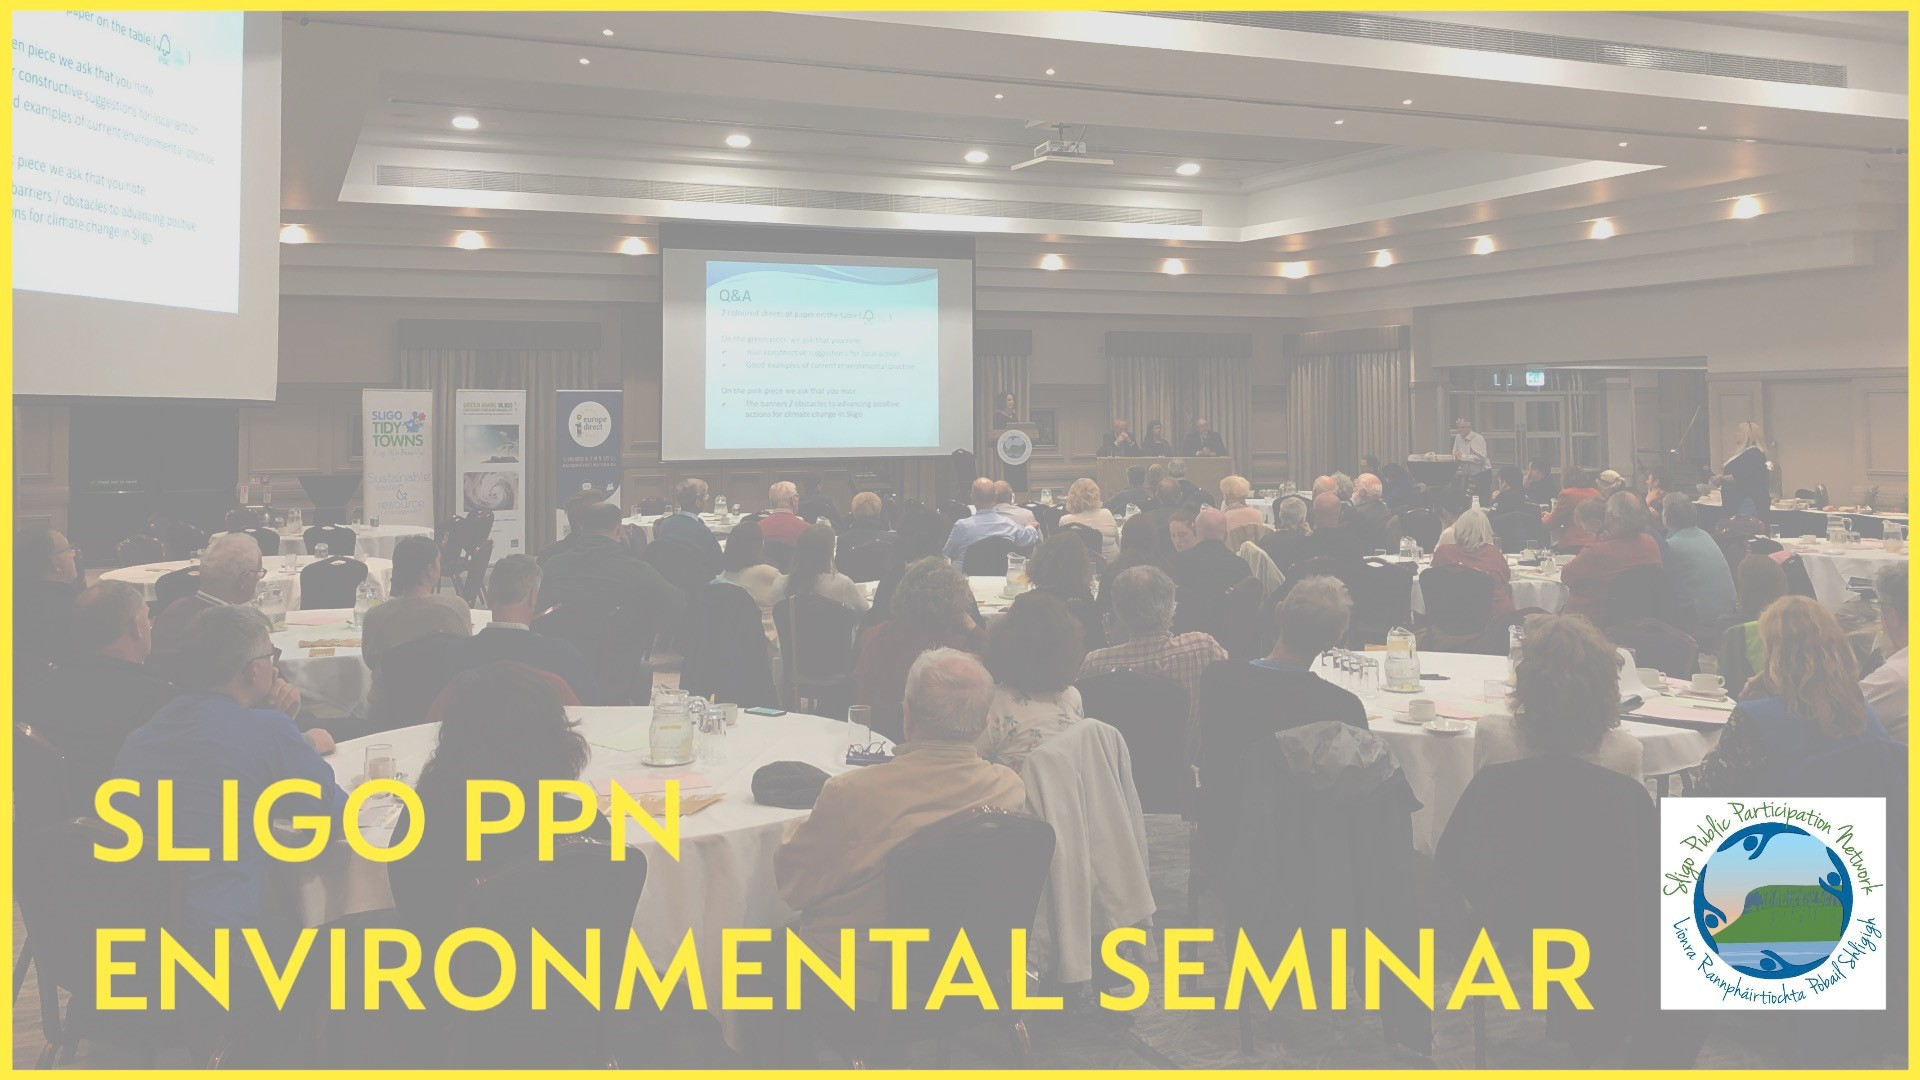 Blog 8 - Environmental Awareness Seminar in Sligo